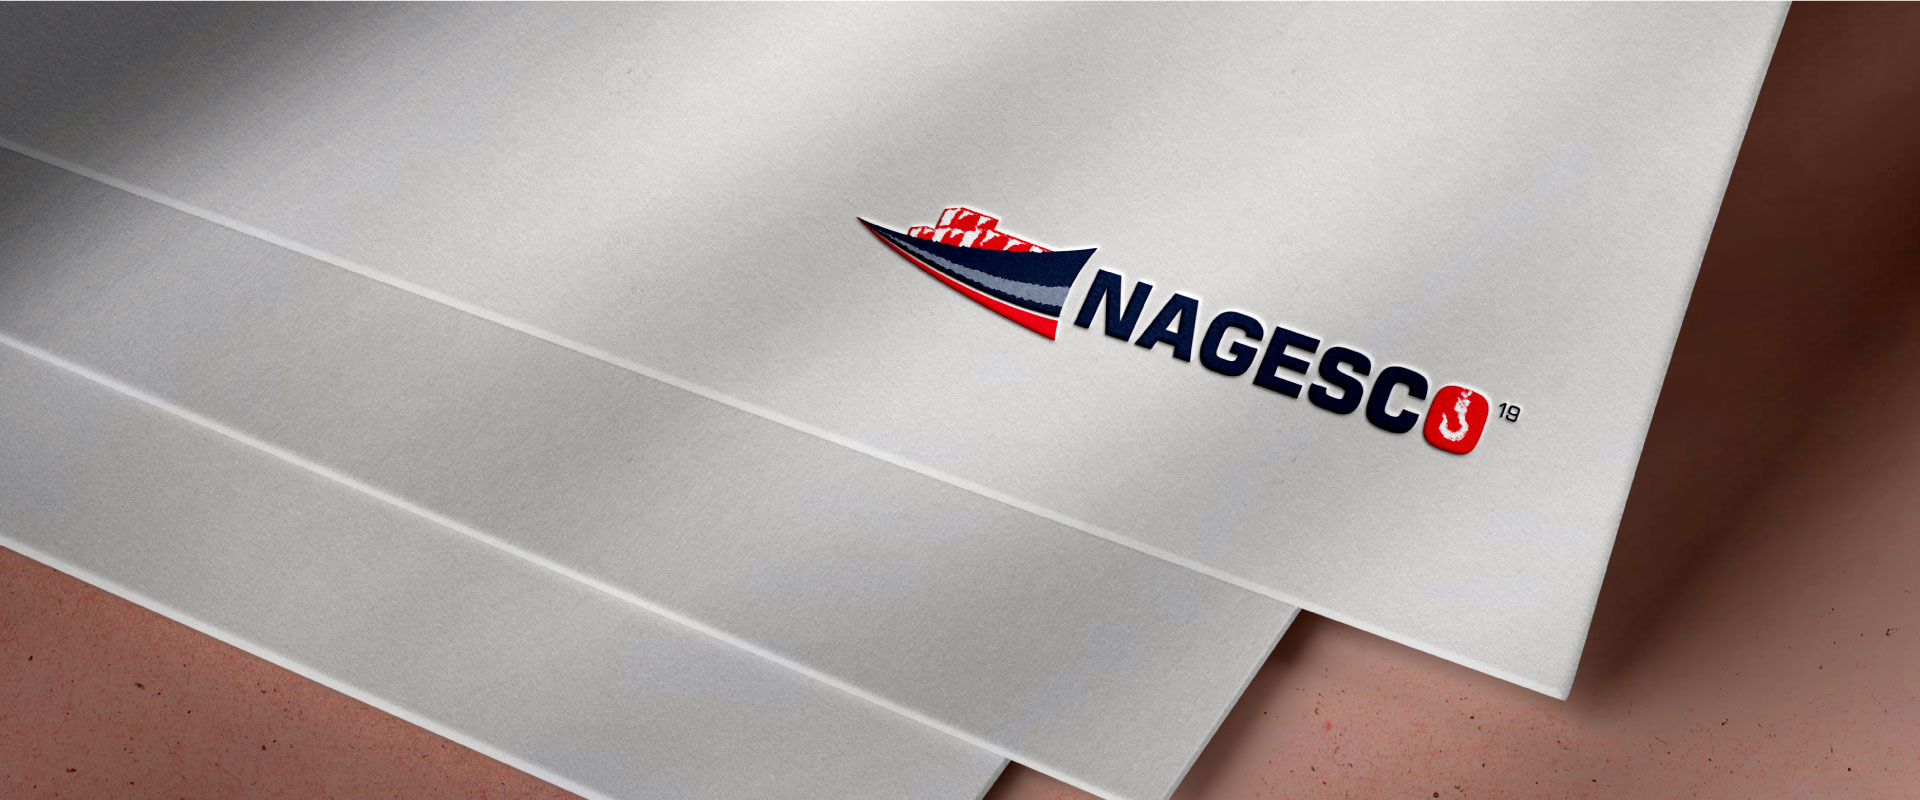 nagesco-brand-logo-design-by-mapleweb-vancouver-canada-business-card-mock